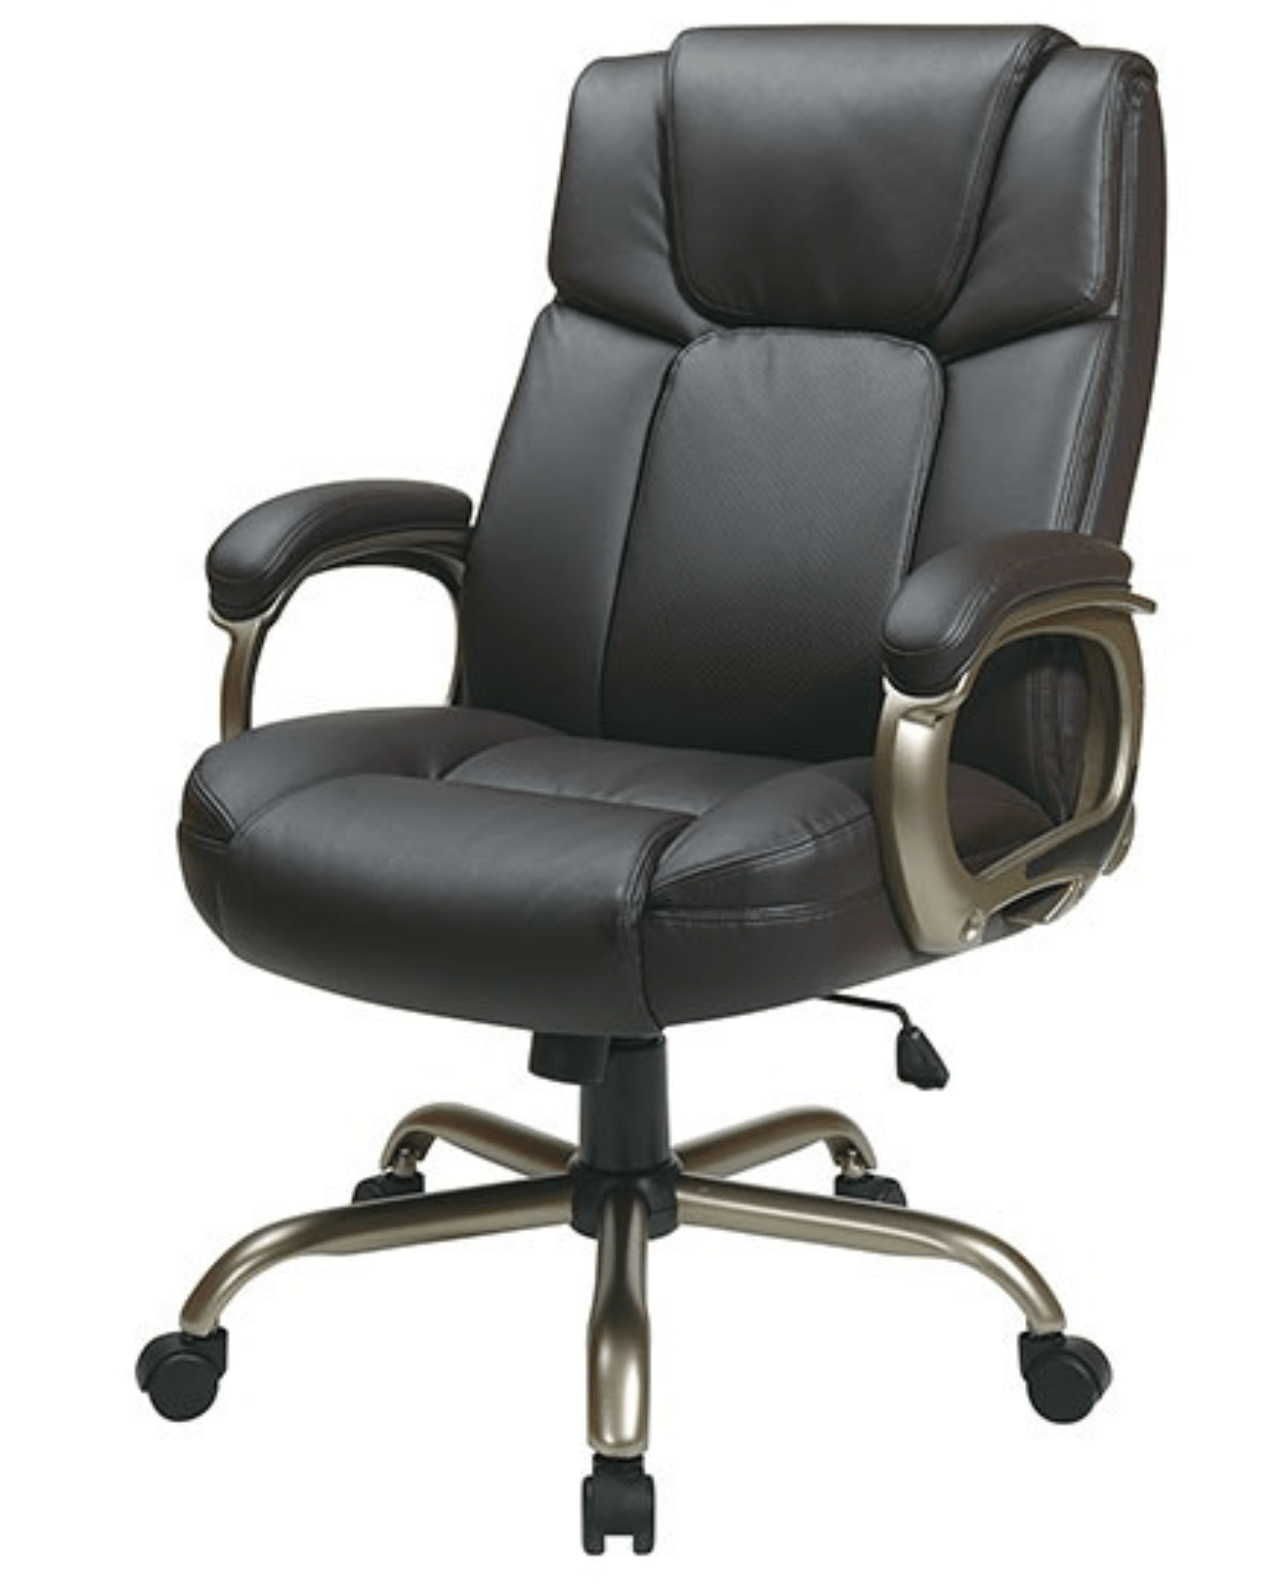 big man chairs upholstered club chair executive mans with espresso eco leather seat